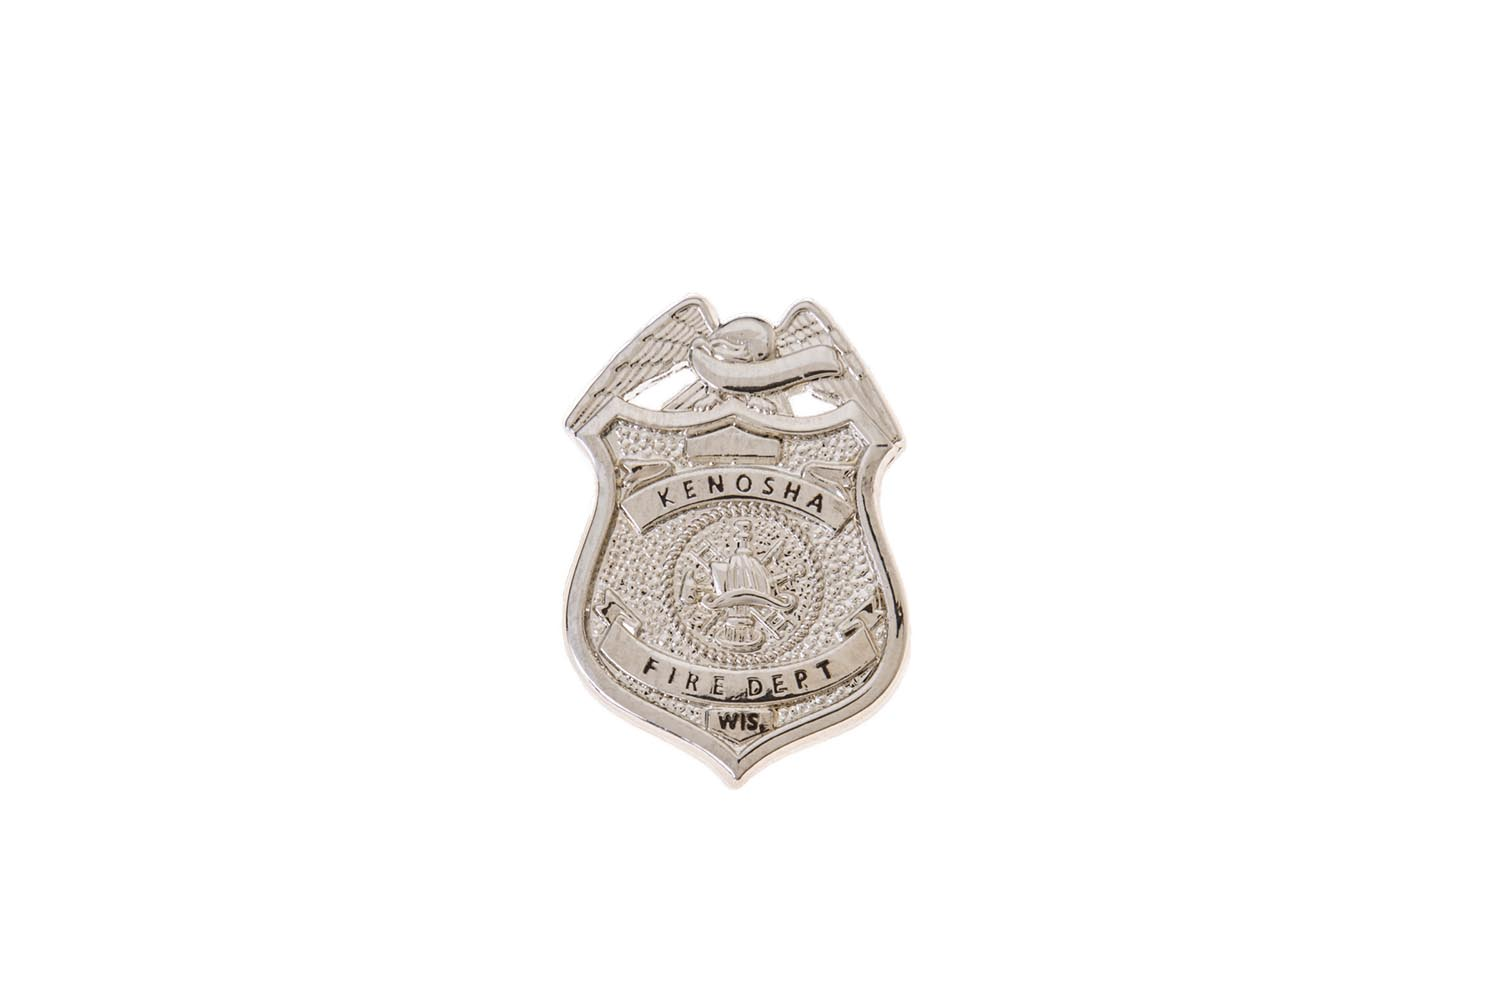 Custom fire department lapel pin